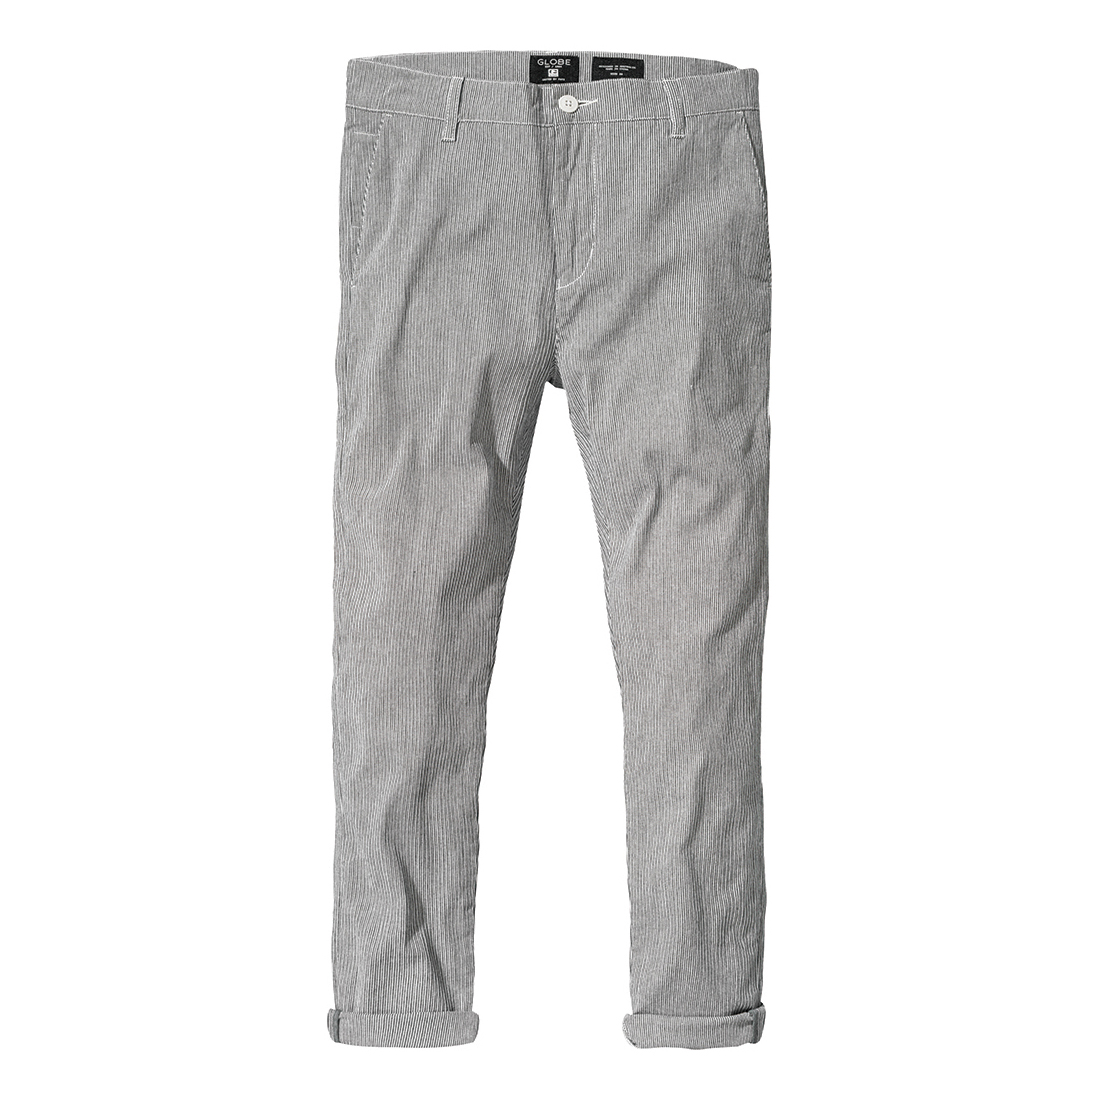 GLOBE Herring Mens Chino Pants